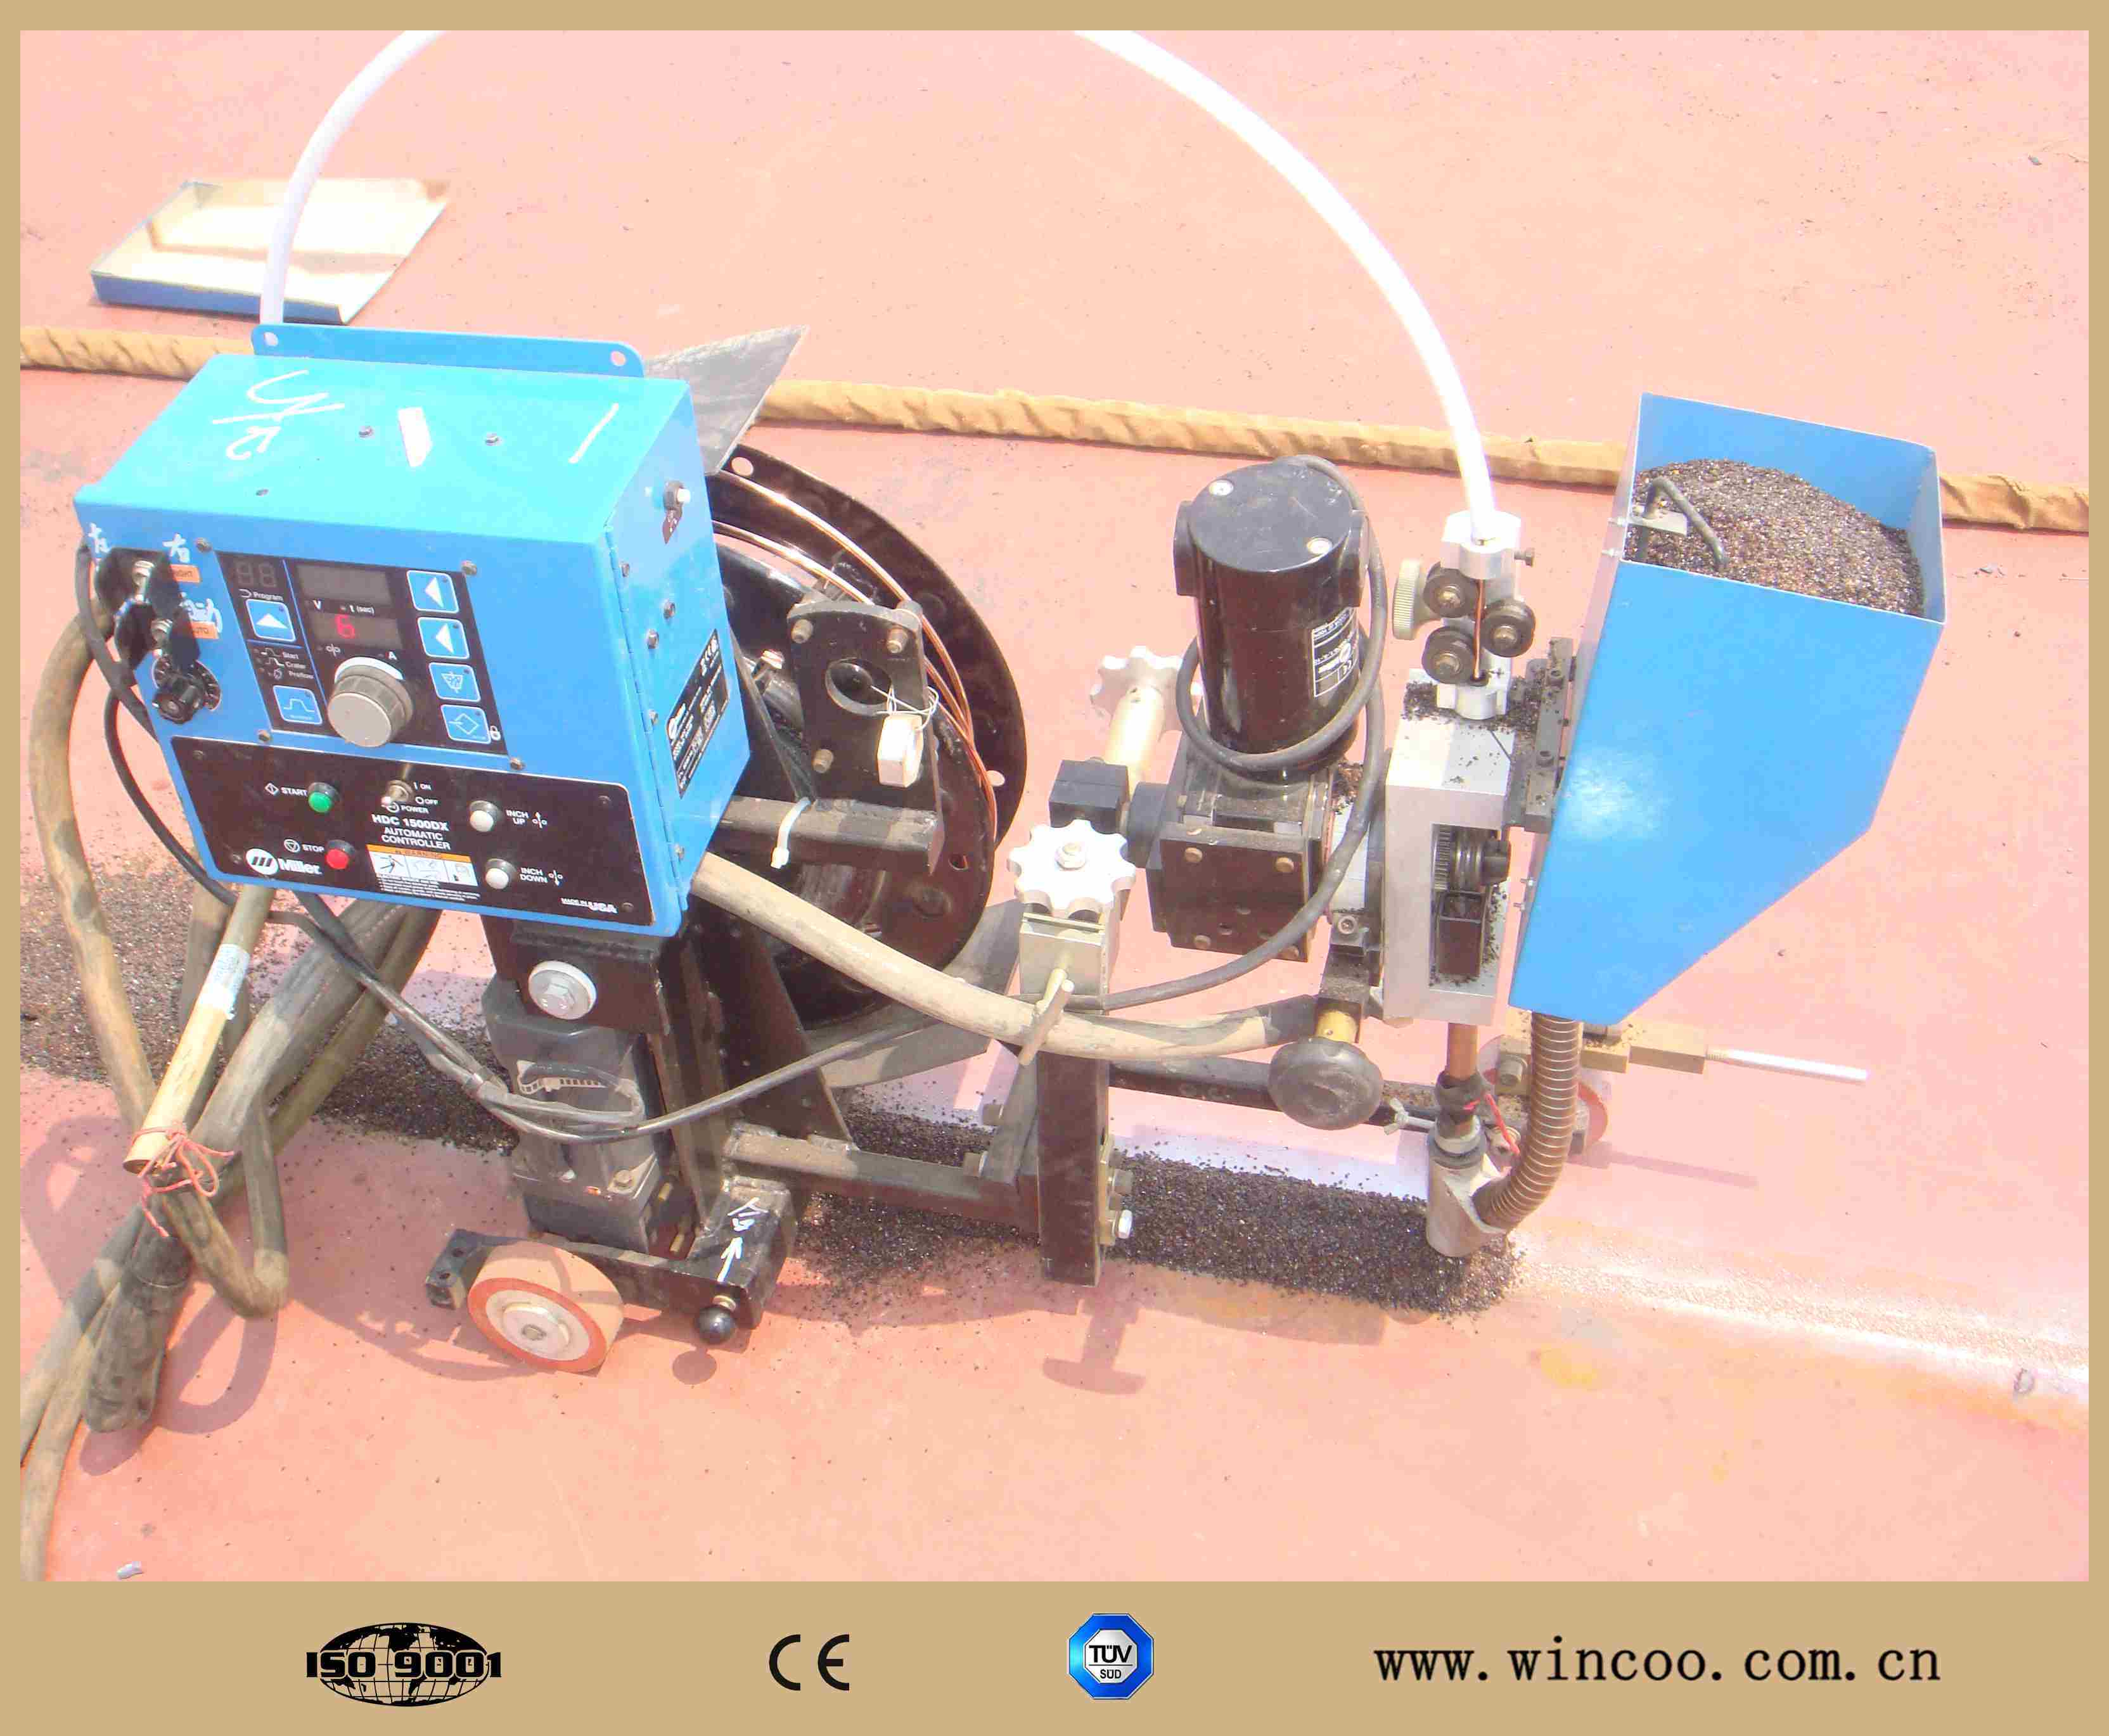 Automatic Tank Fillet/Automatic Welding Machine